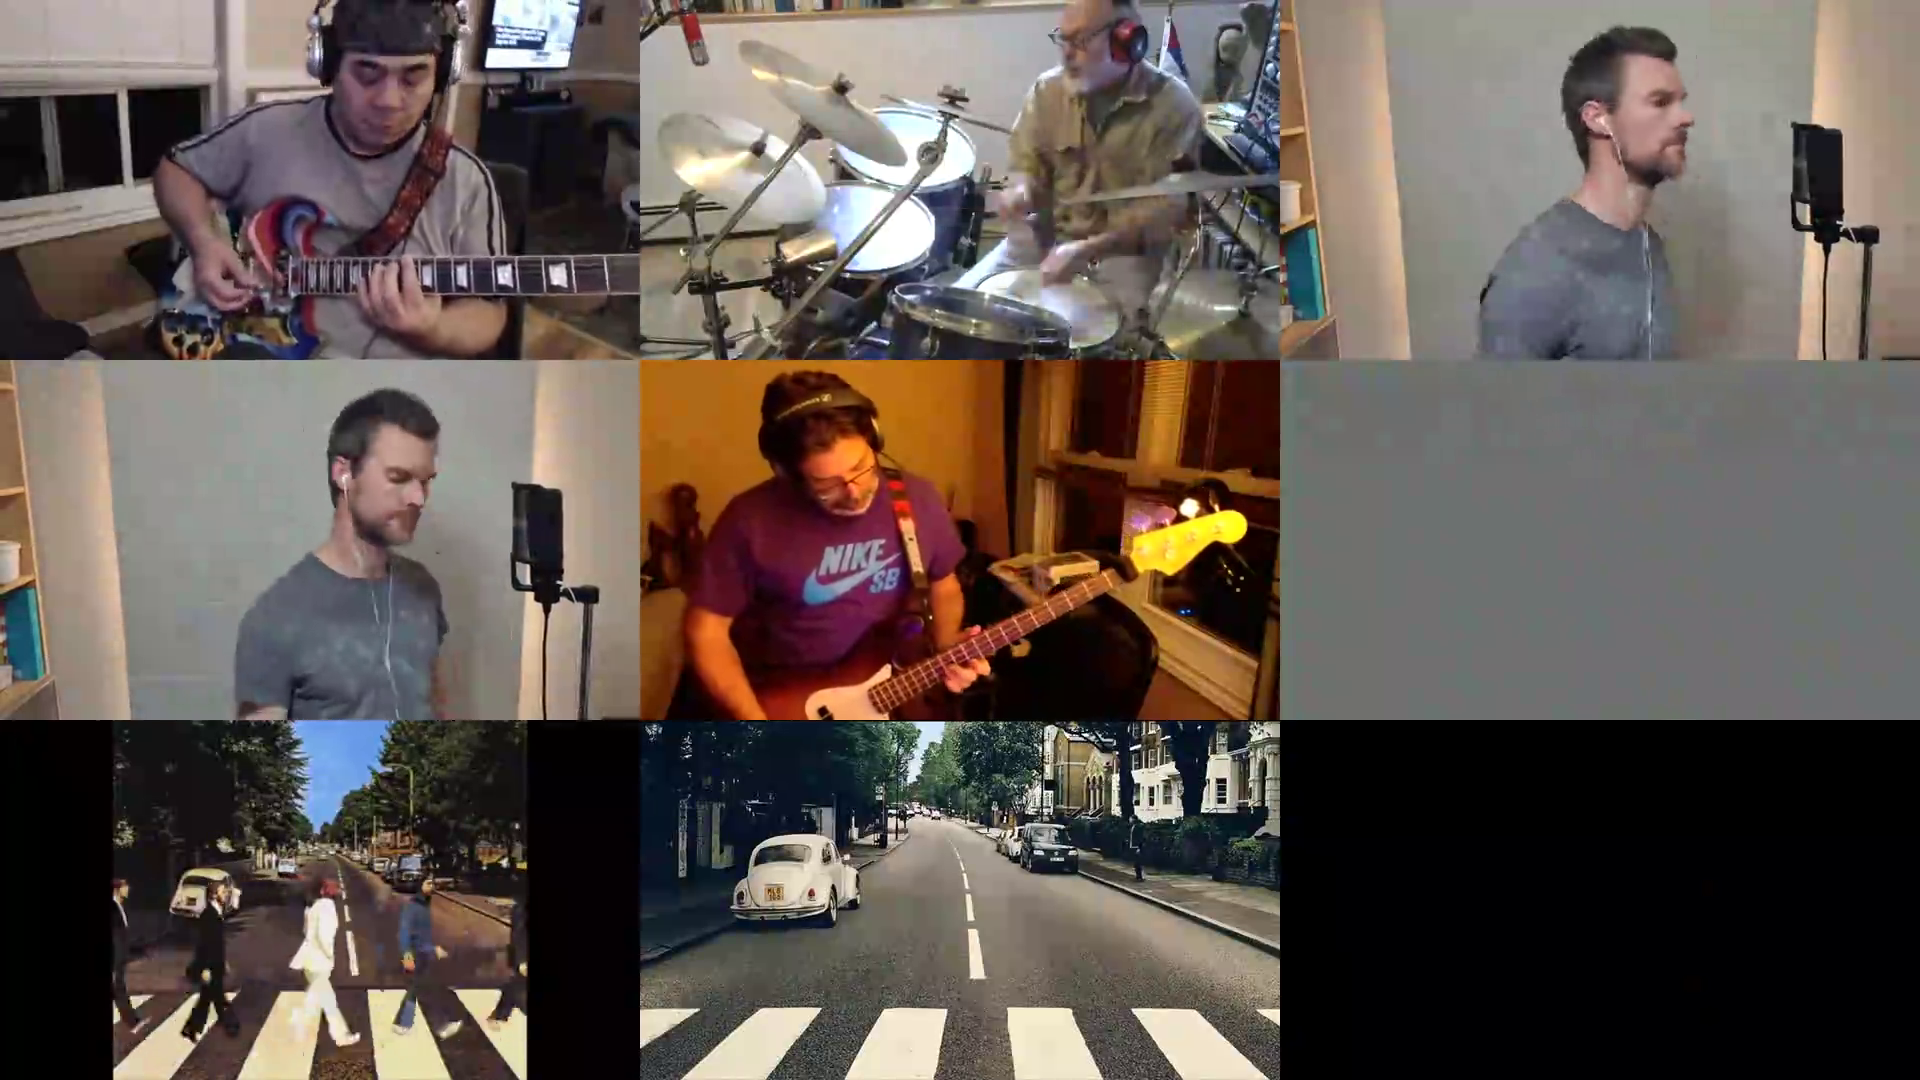 Abbey Road #1 - Come Together - The Beatles